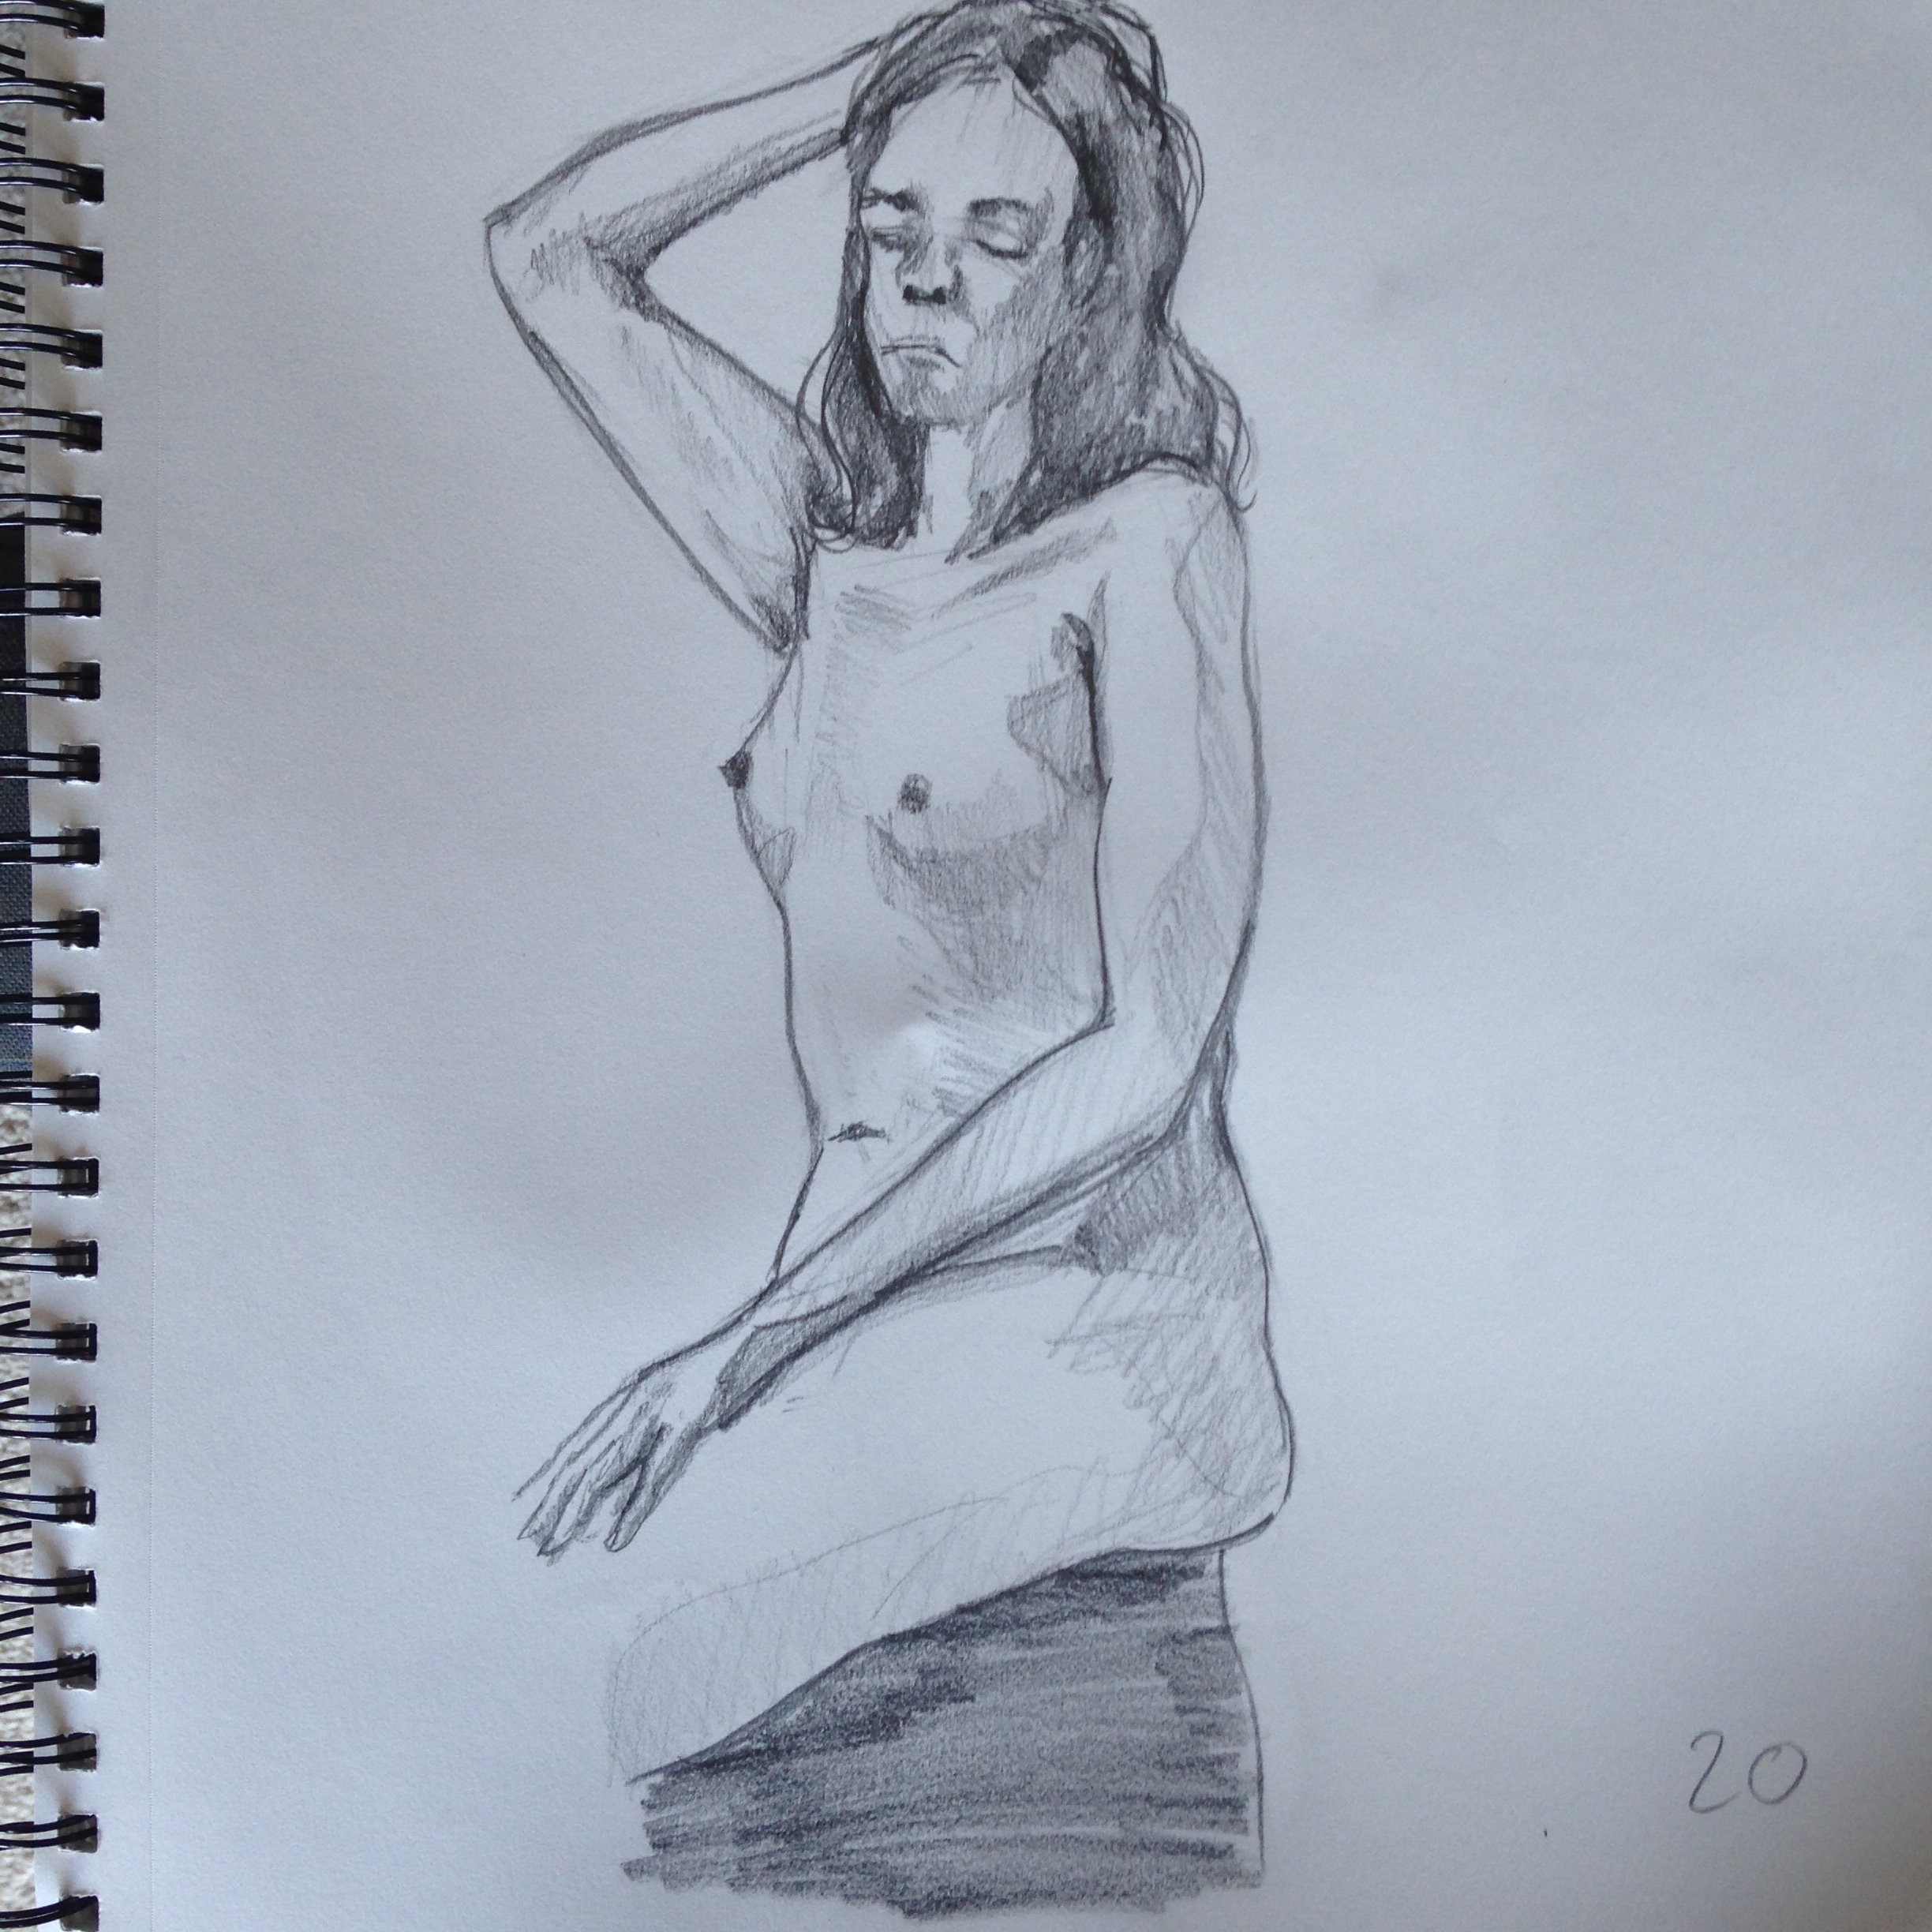 Life Drawing - Pencil on 11x14 sketchbook paper